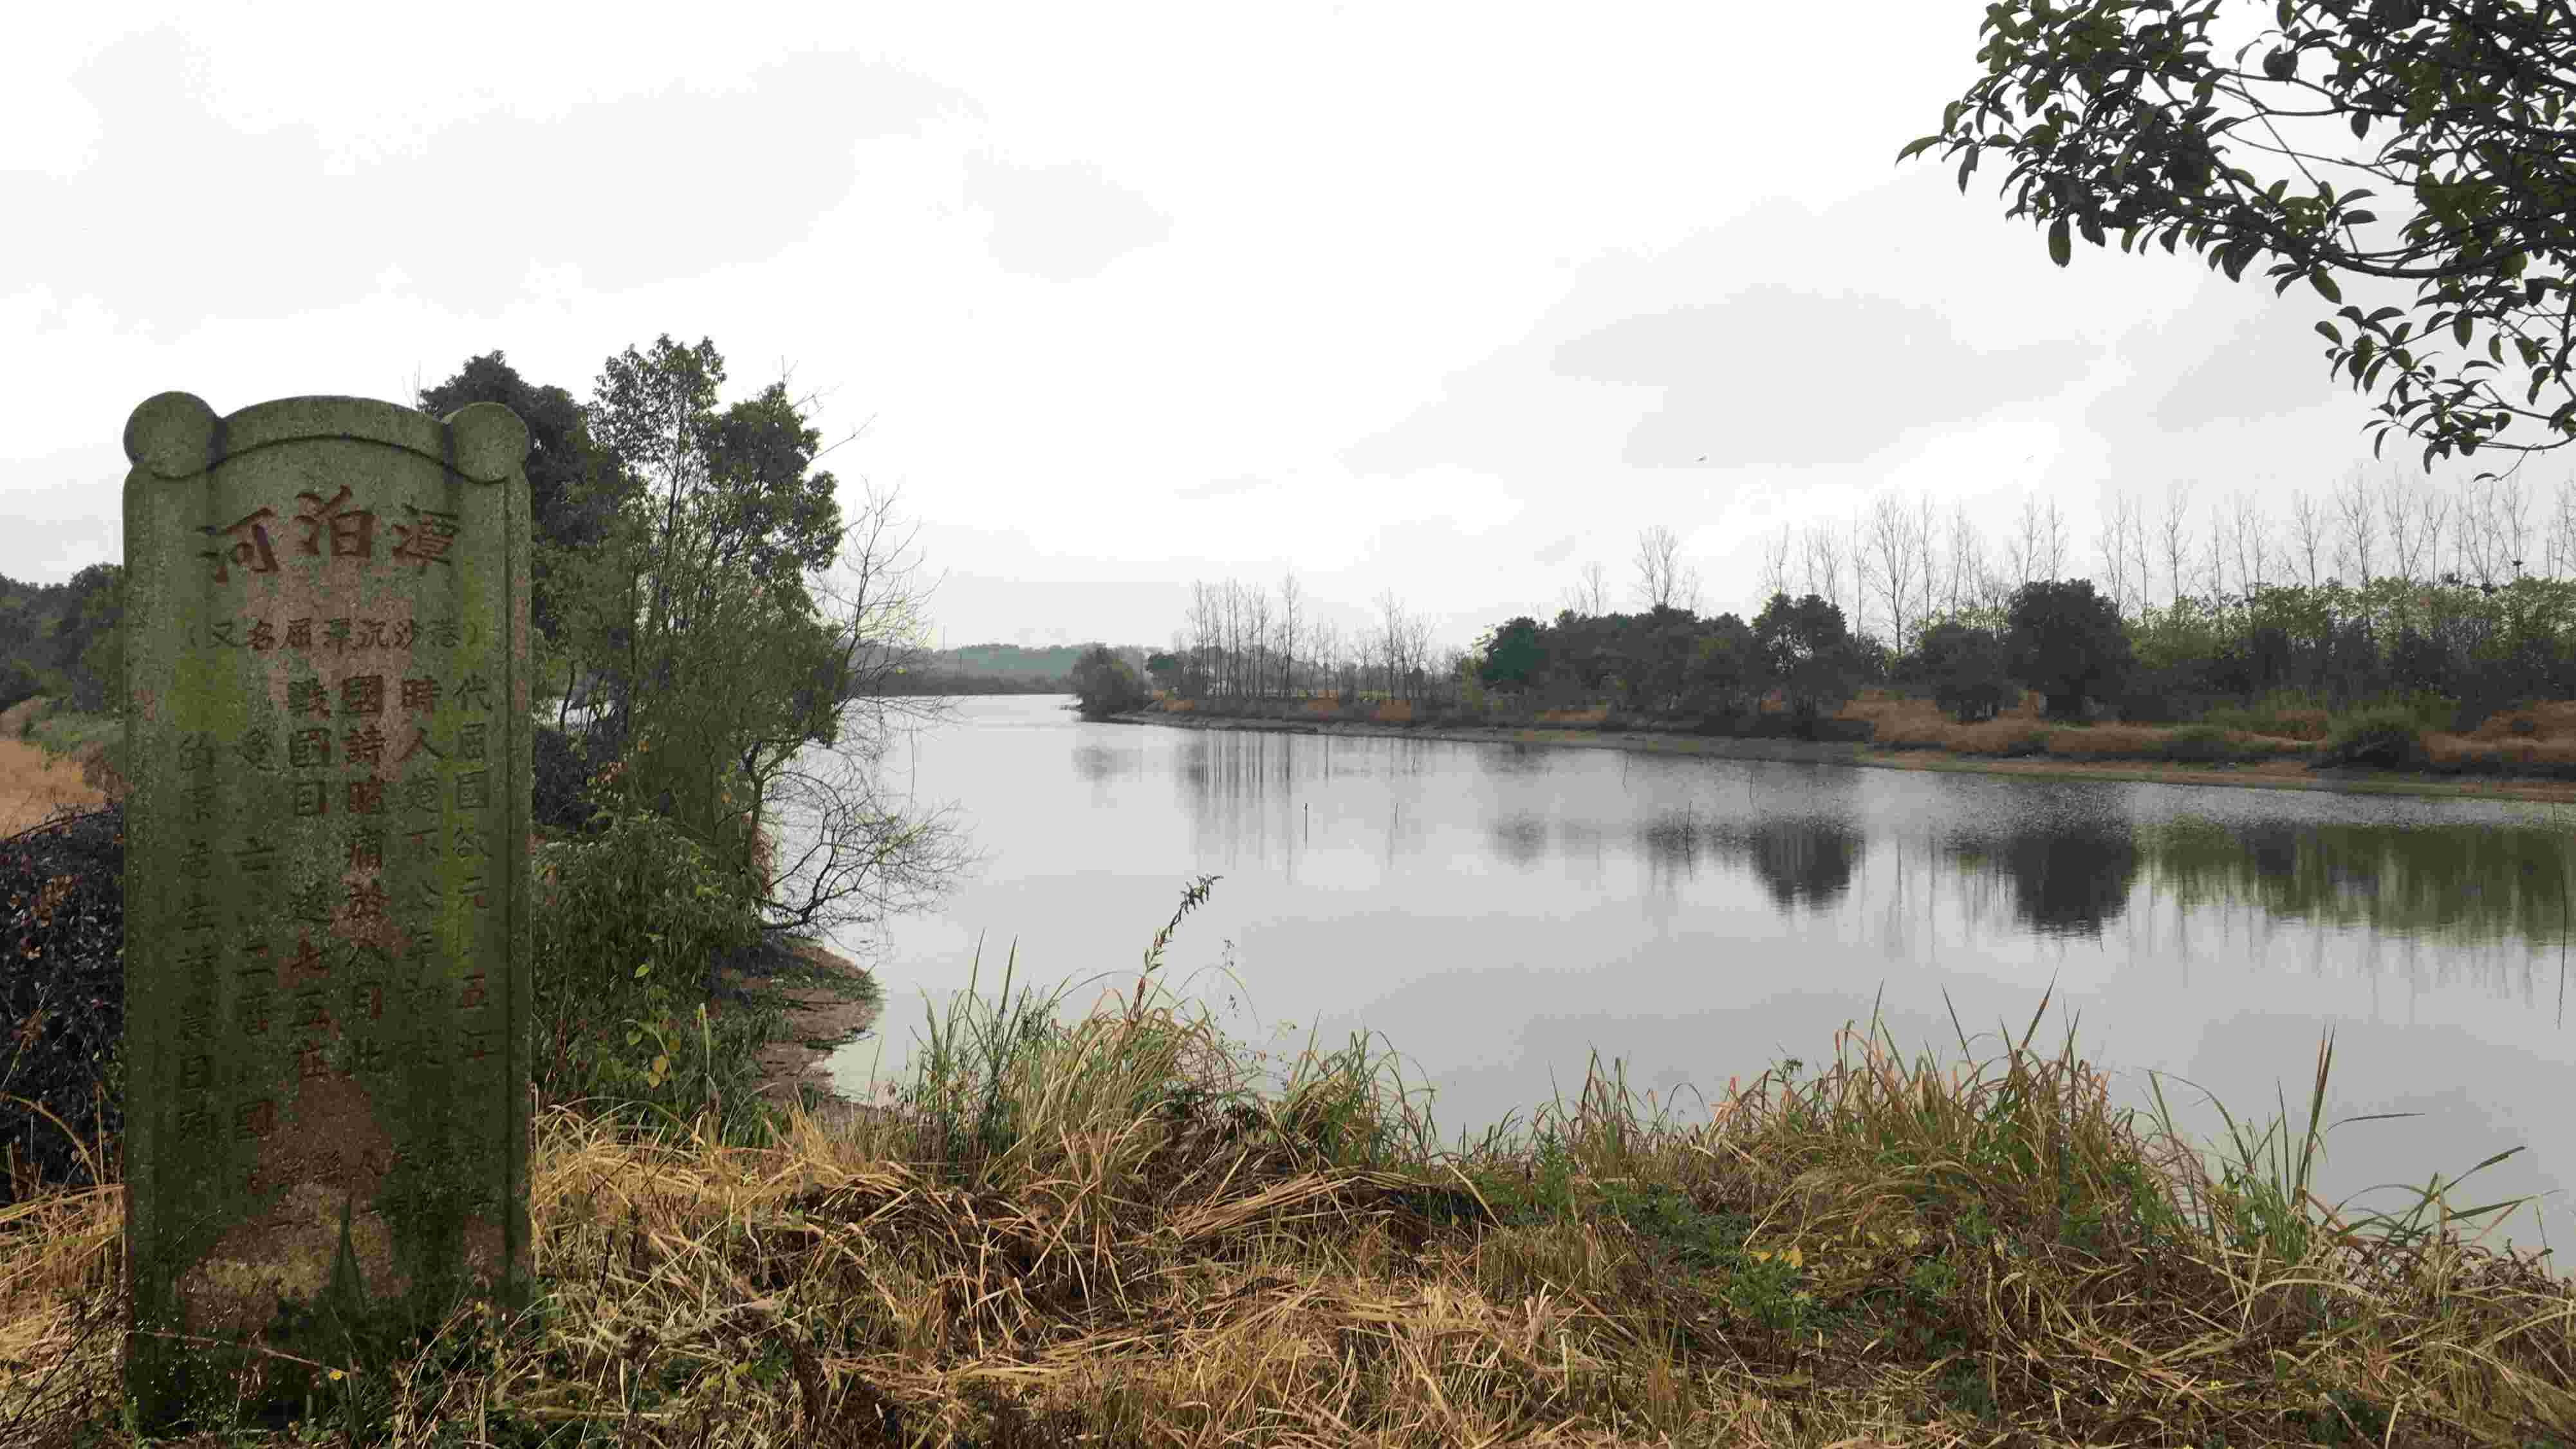 The place where Qu Yuan threw himself into the Miluo River, located in today's Hunan province.